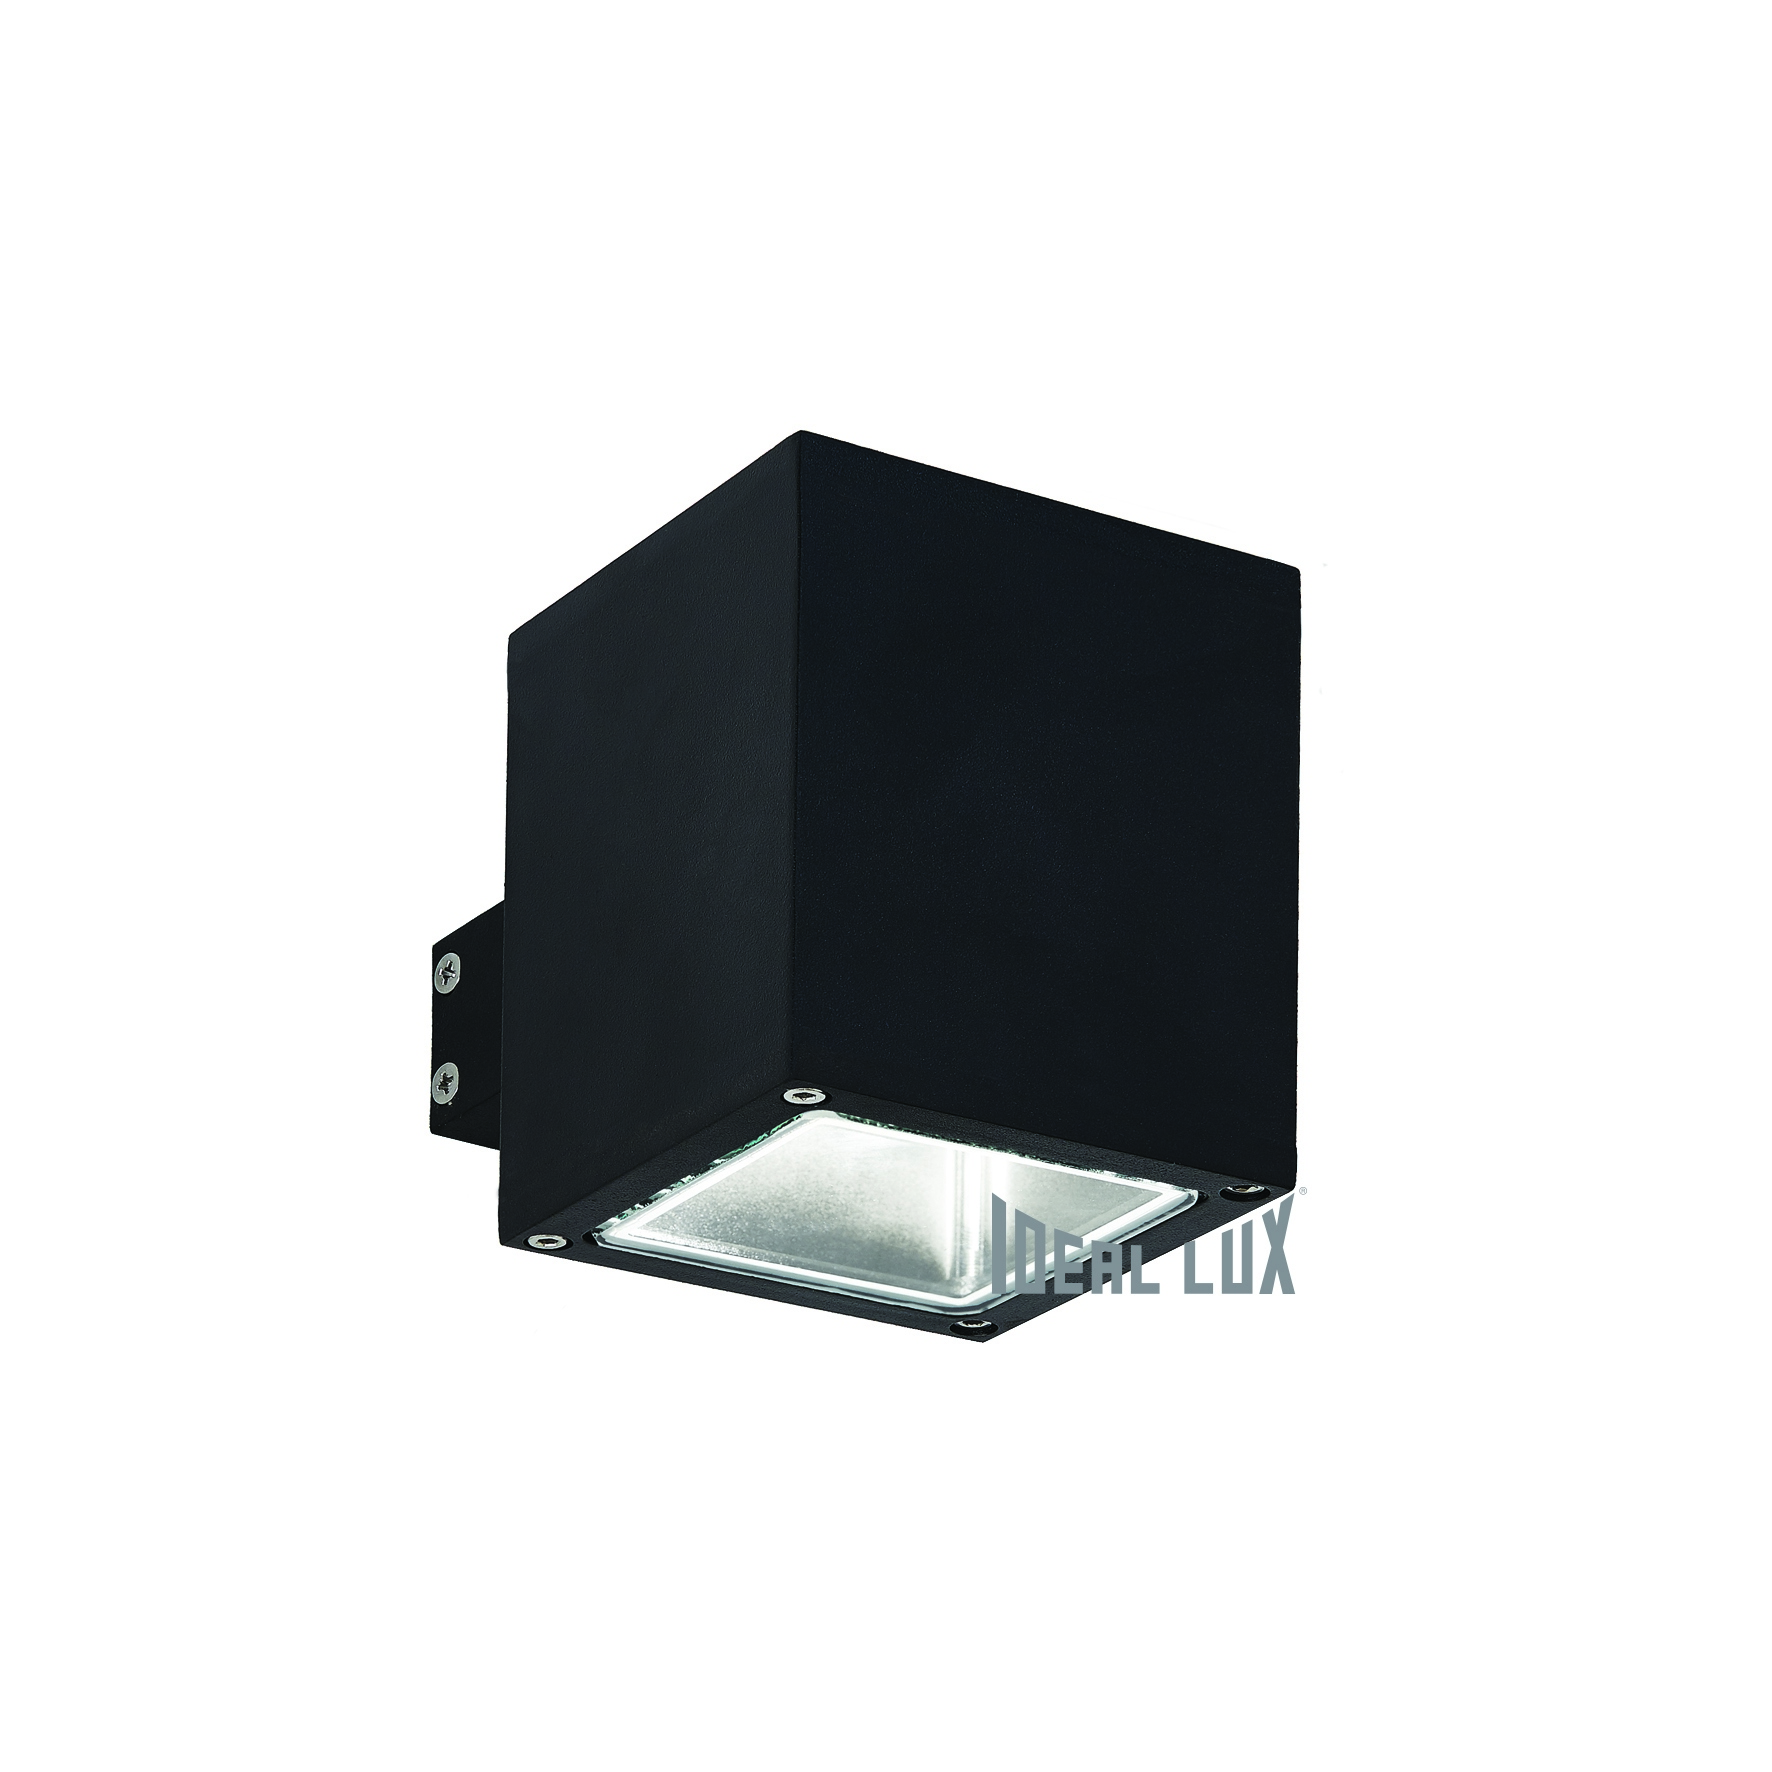 Настенное бра Ideal Lux Snif SNIF AP1 SQUARE NERO светодиодный спот ideal lux page ap1 square nero